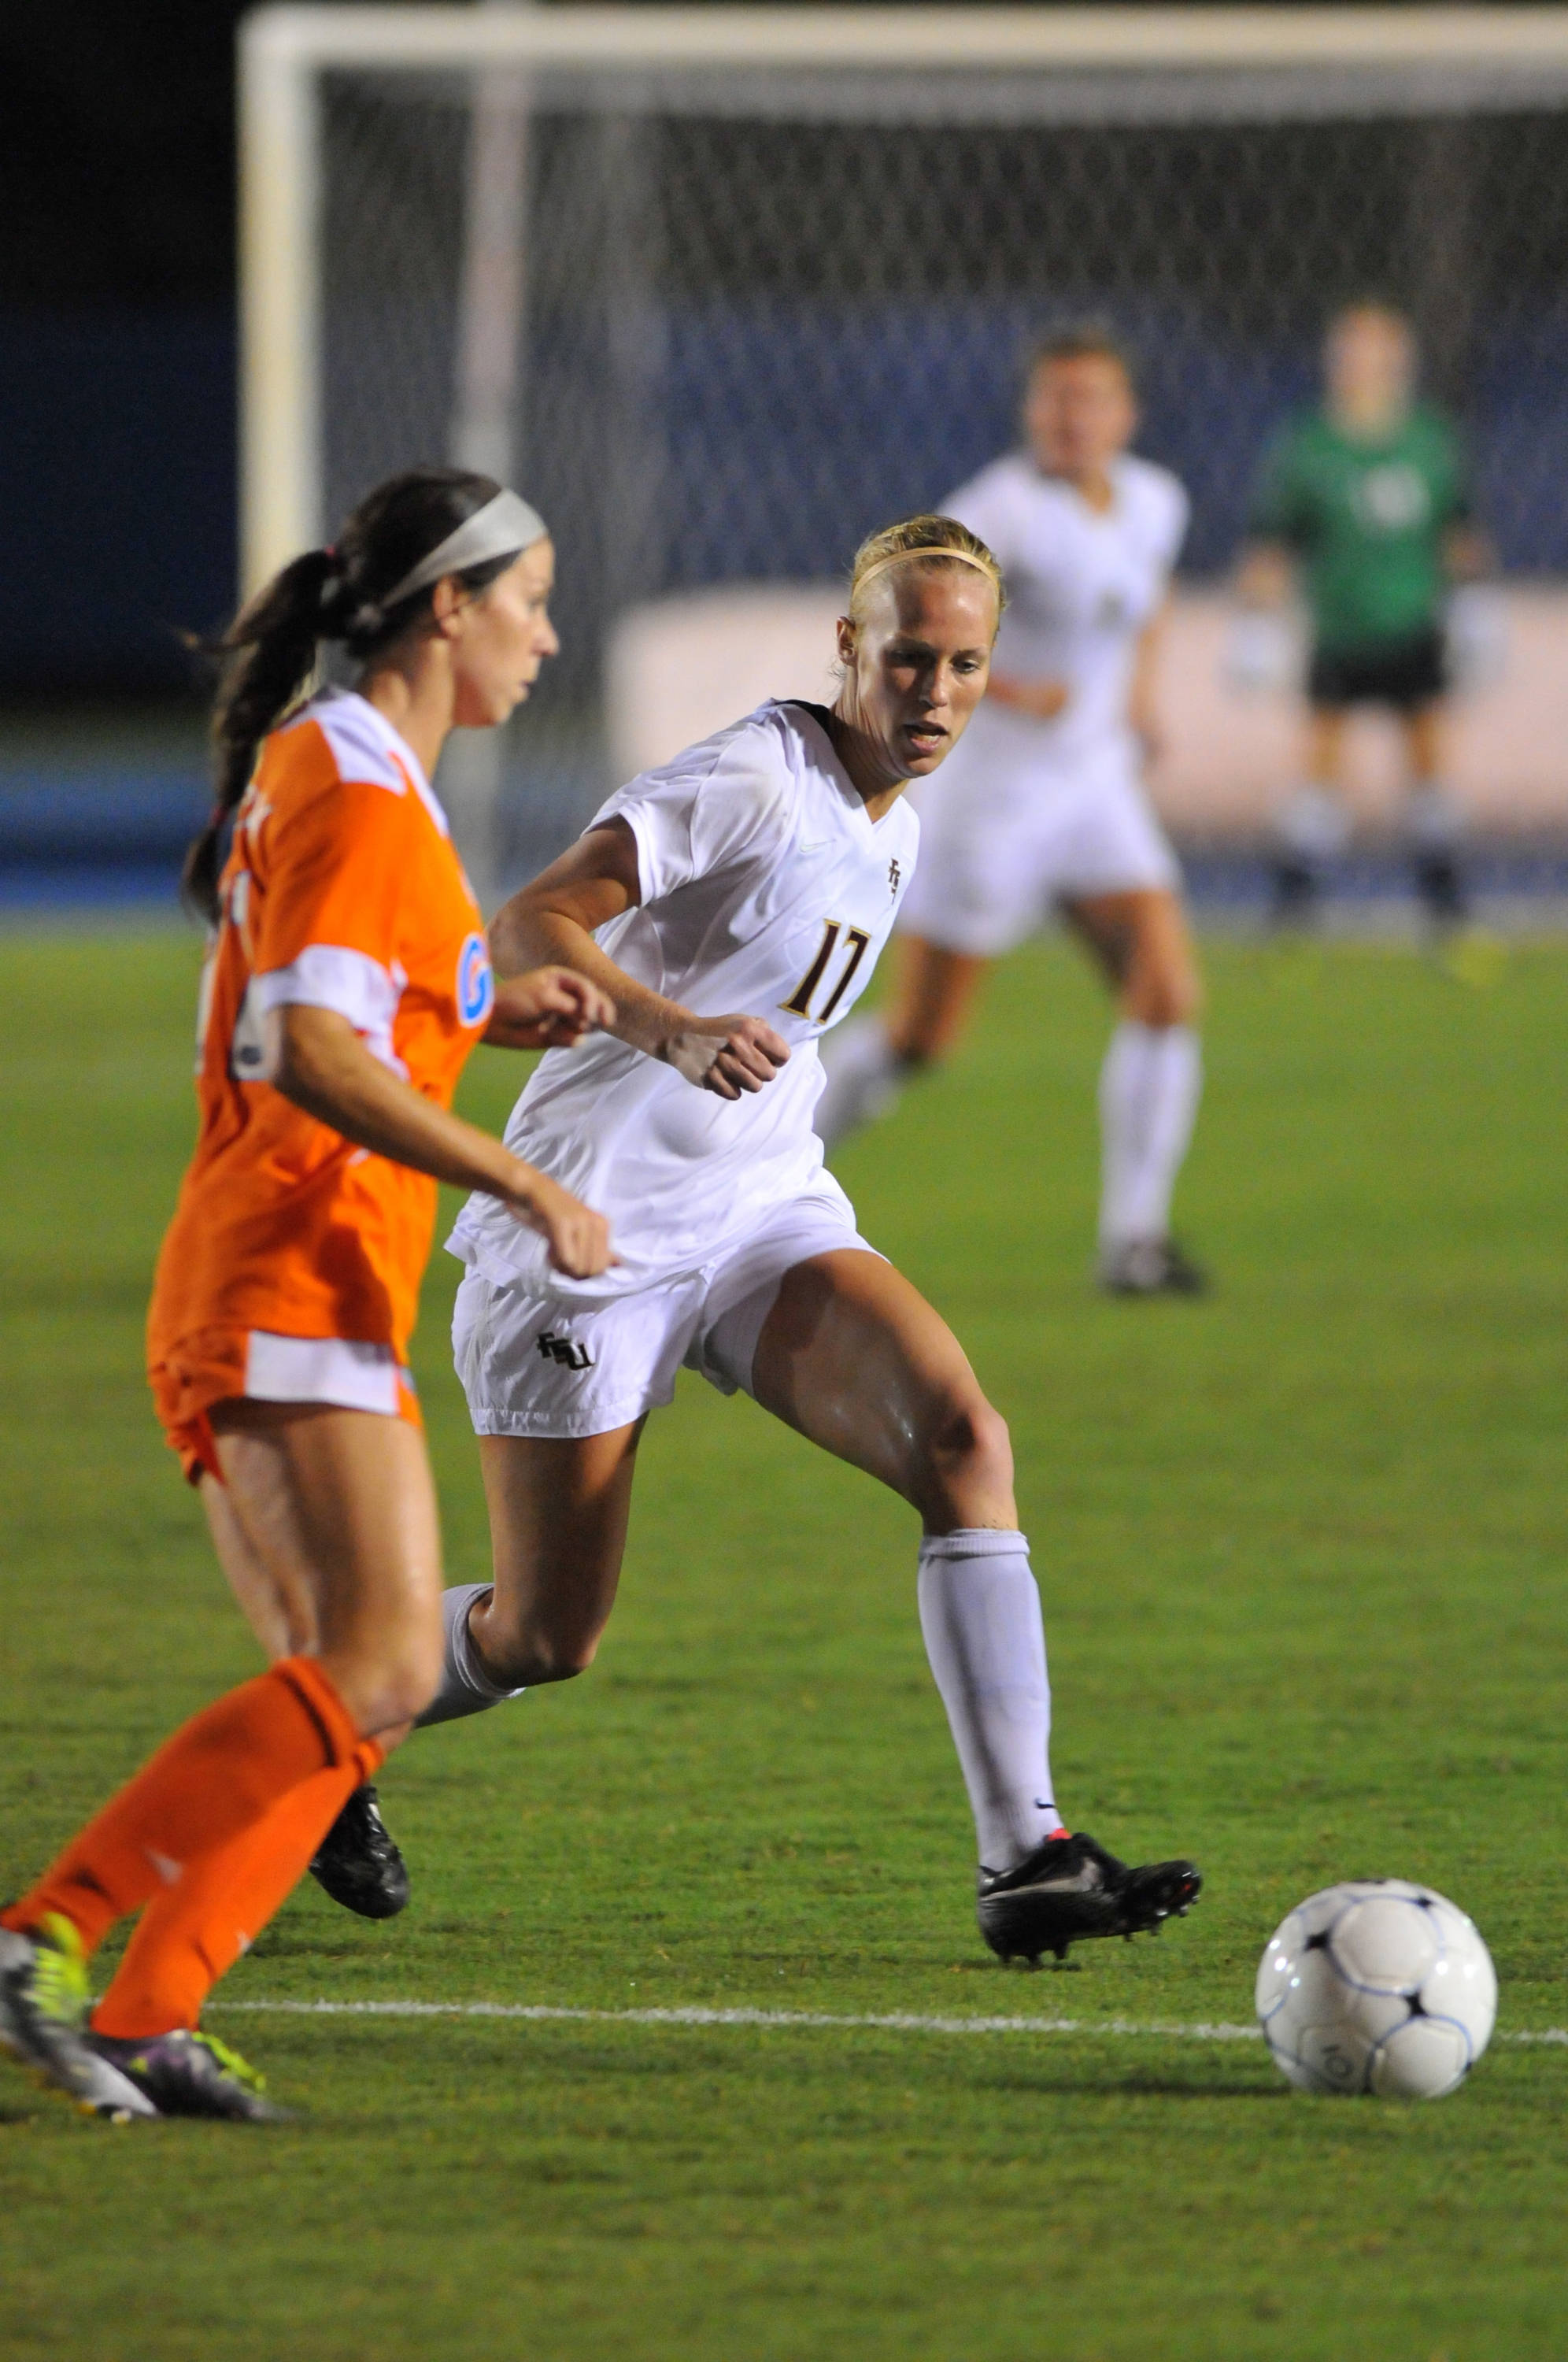 Ella Stephan defends the ball in the second half.